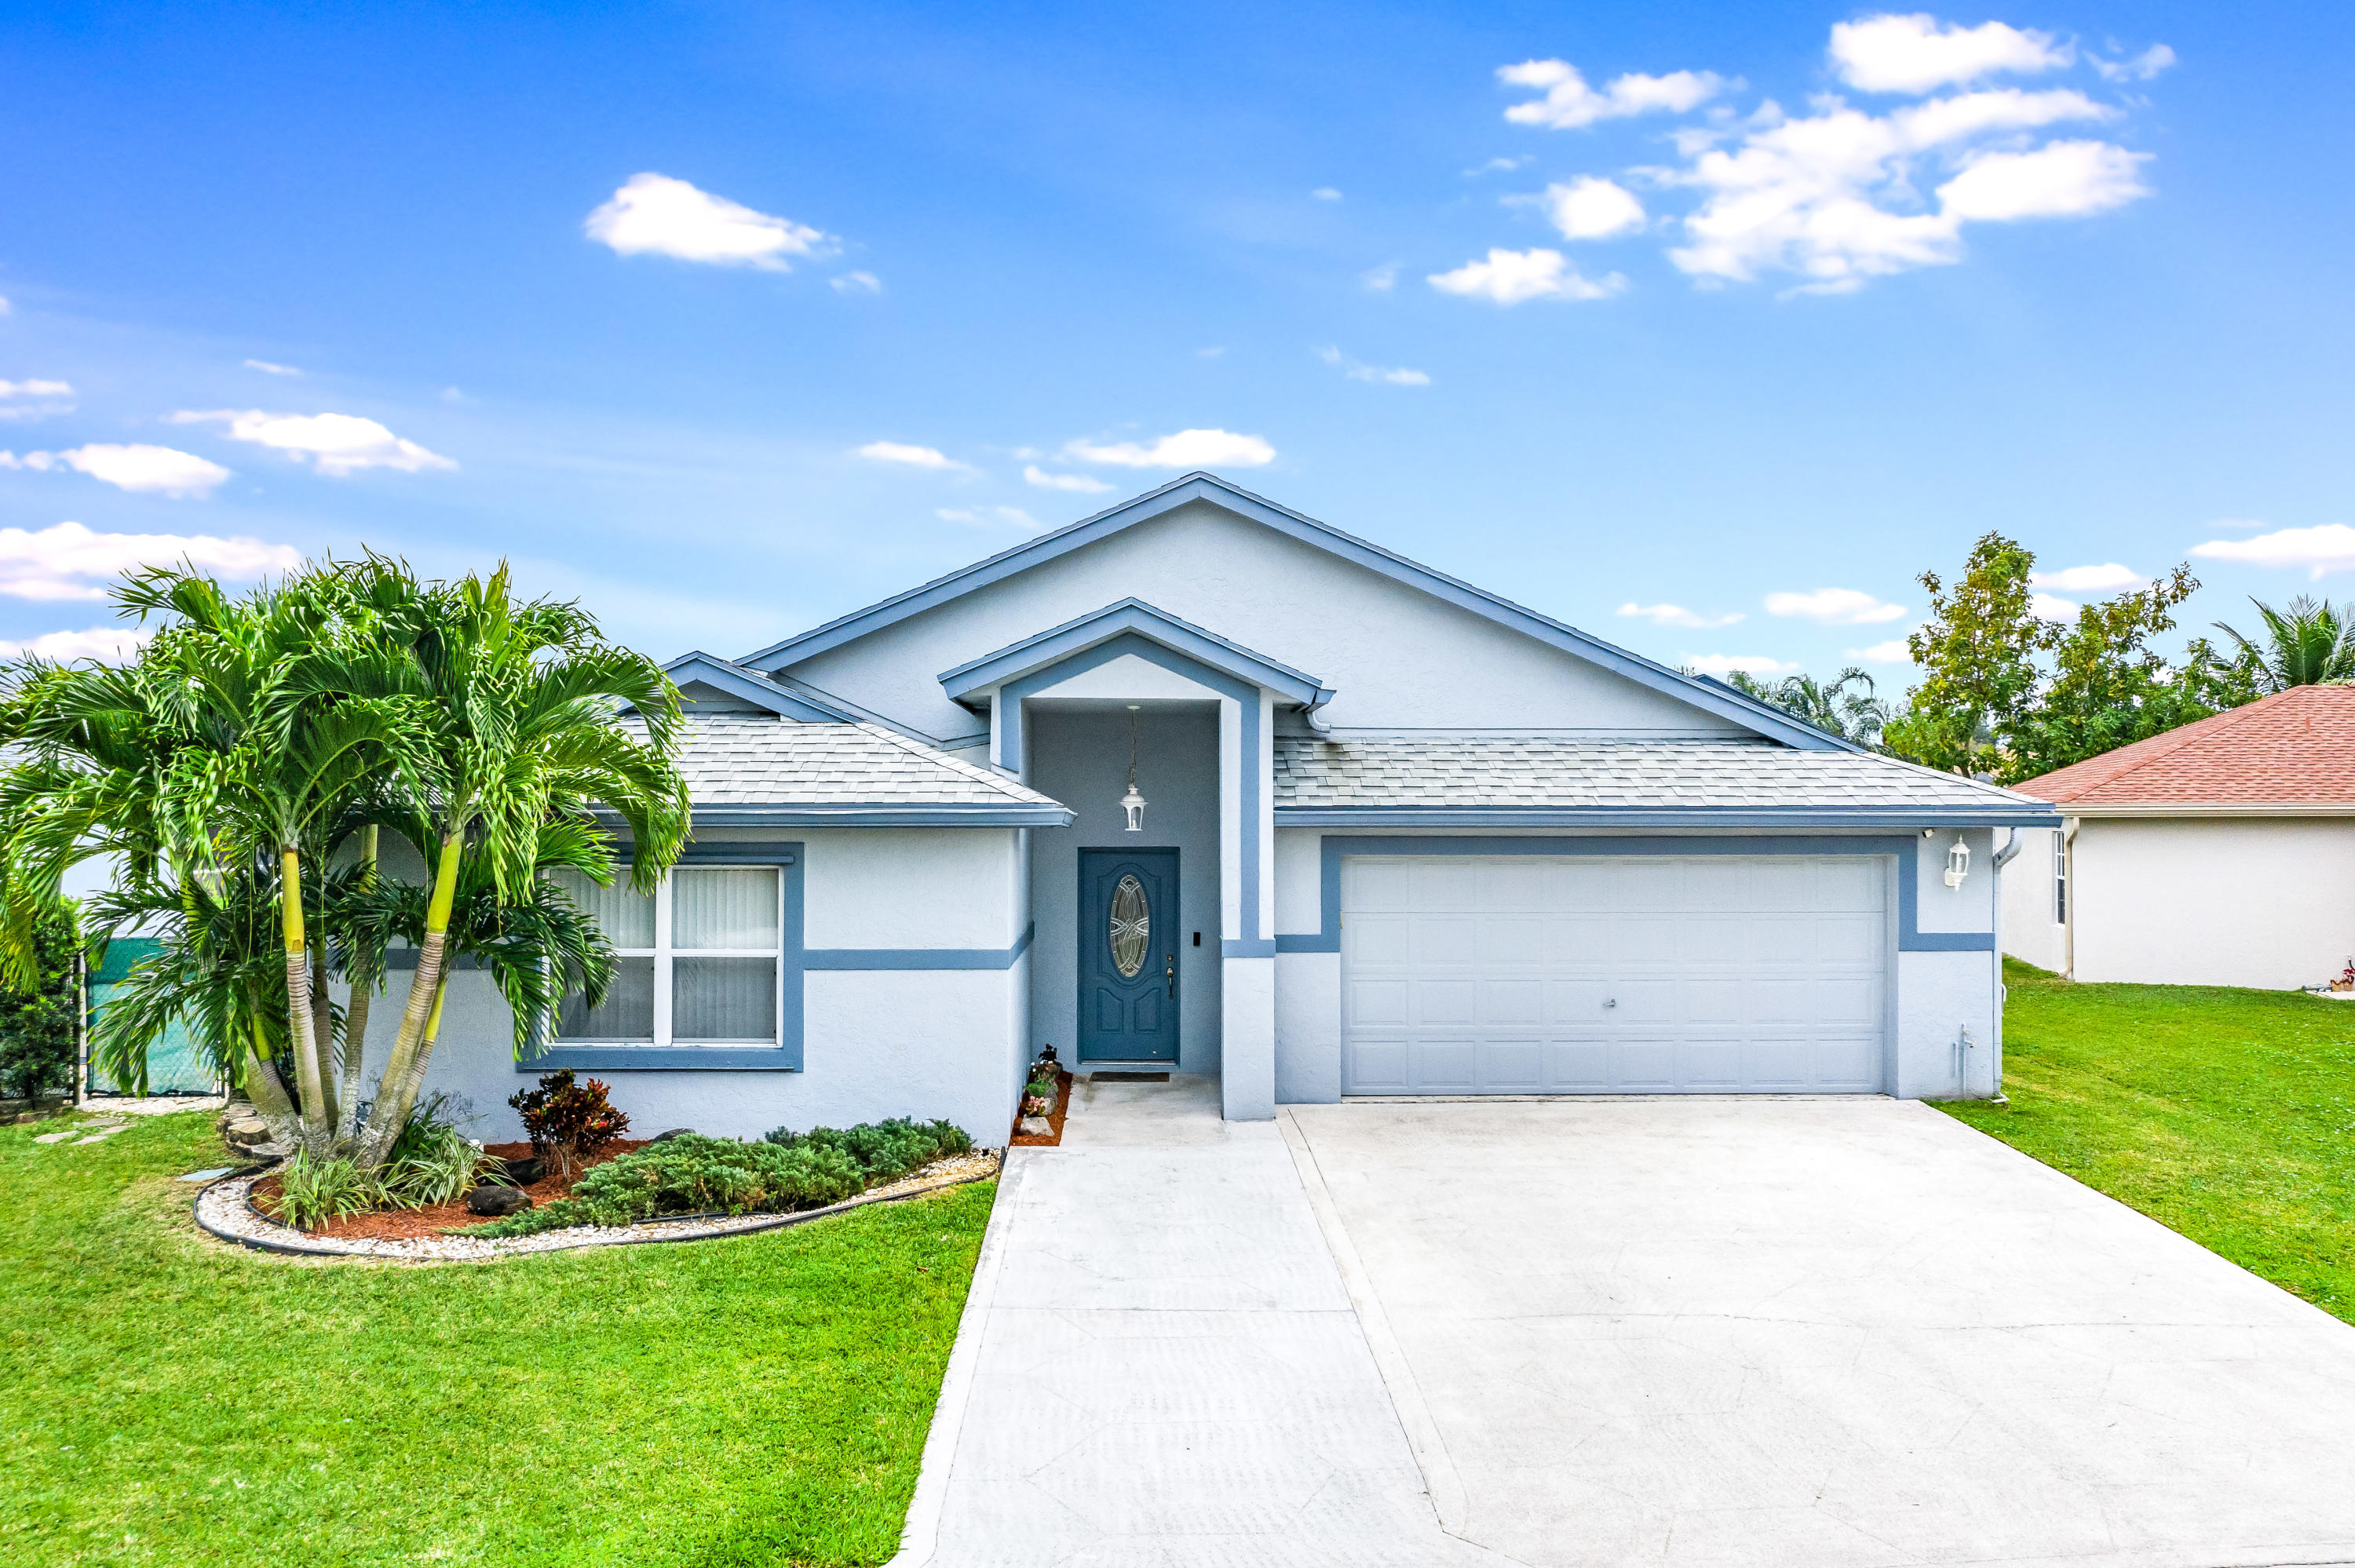 Home for sale in Olive Tree Greenacres Florida